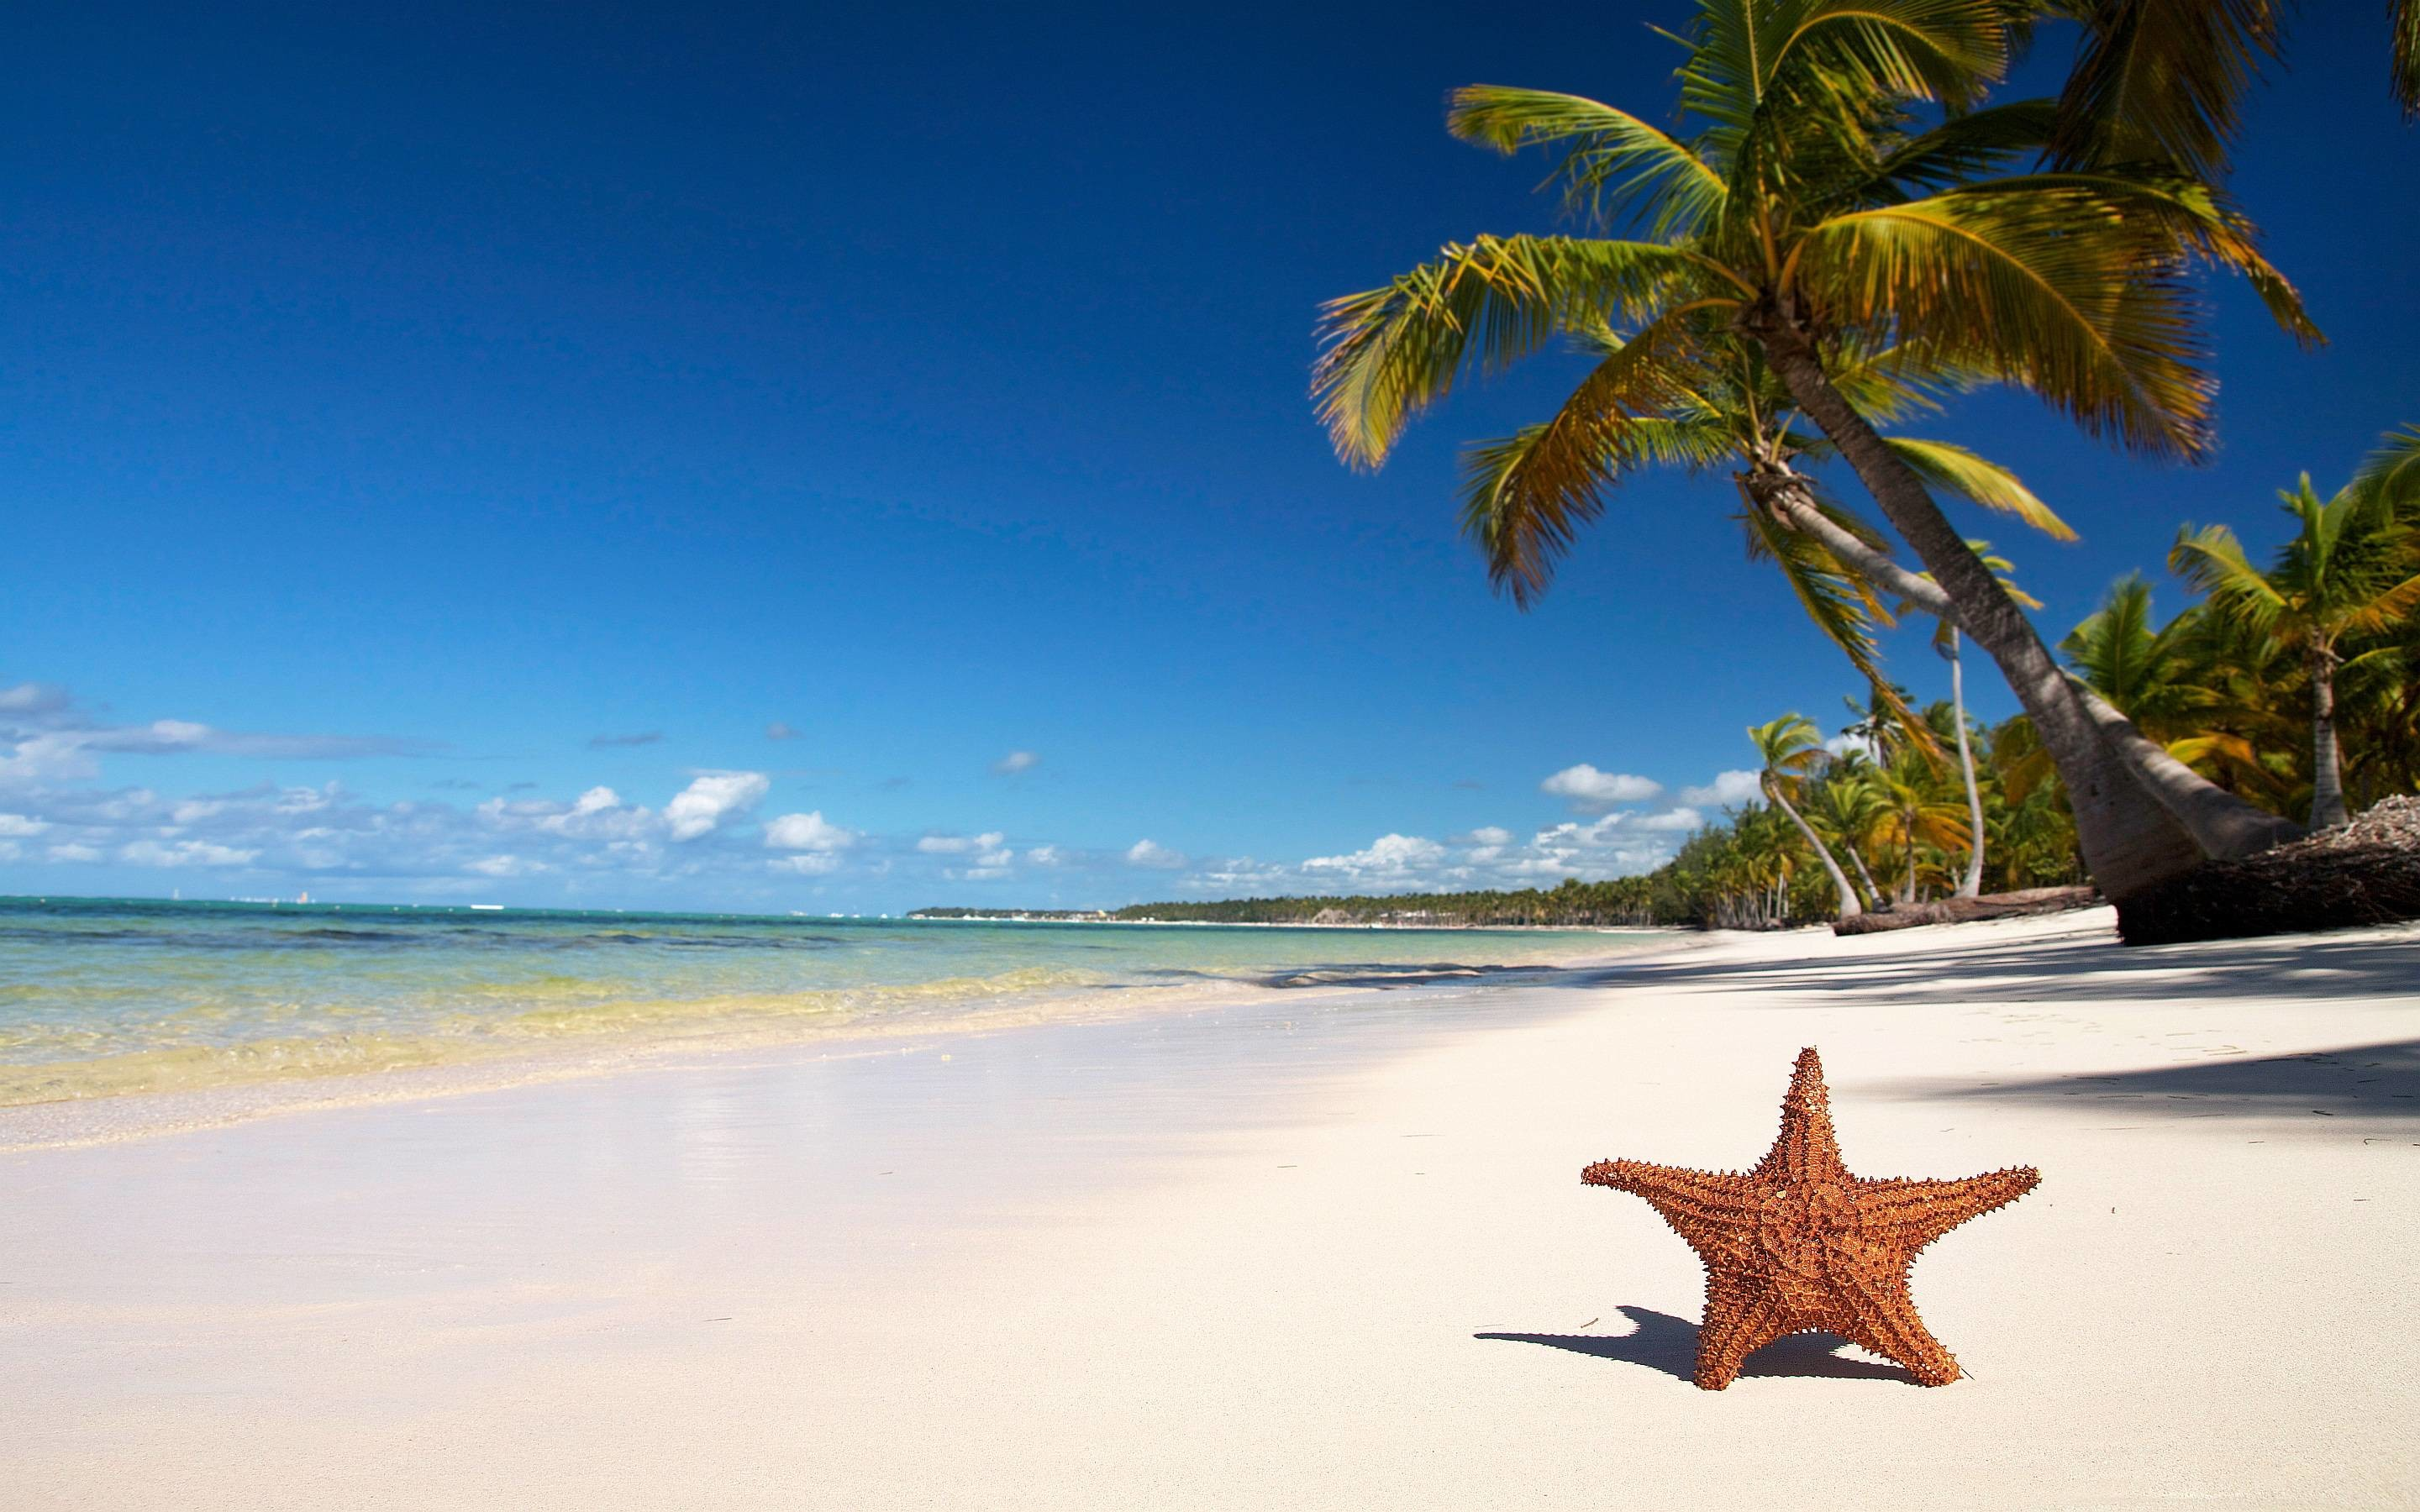 Tropical Beaches Hd Background Wallpaper 73 HD Wallpapers .